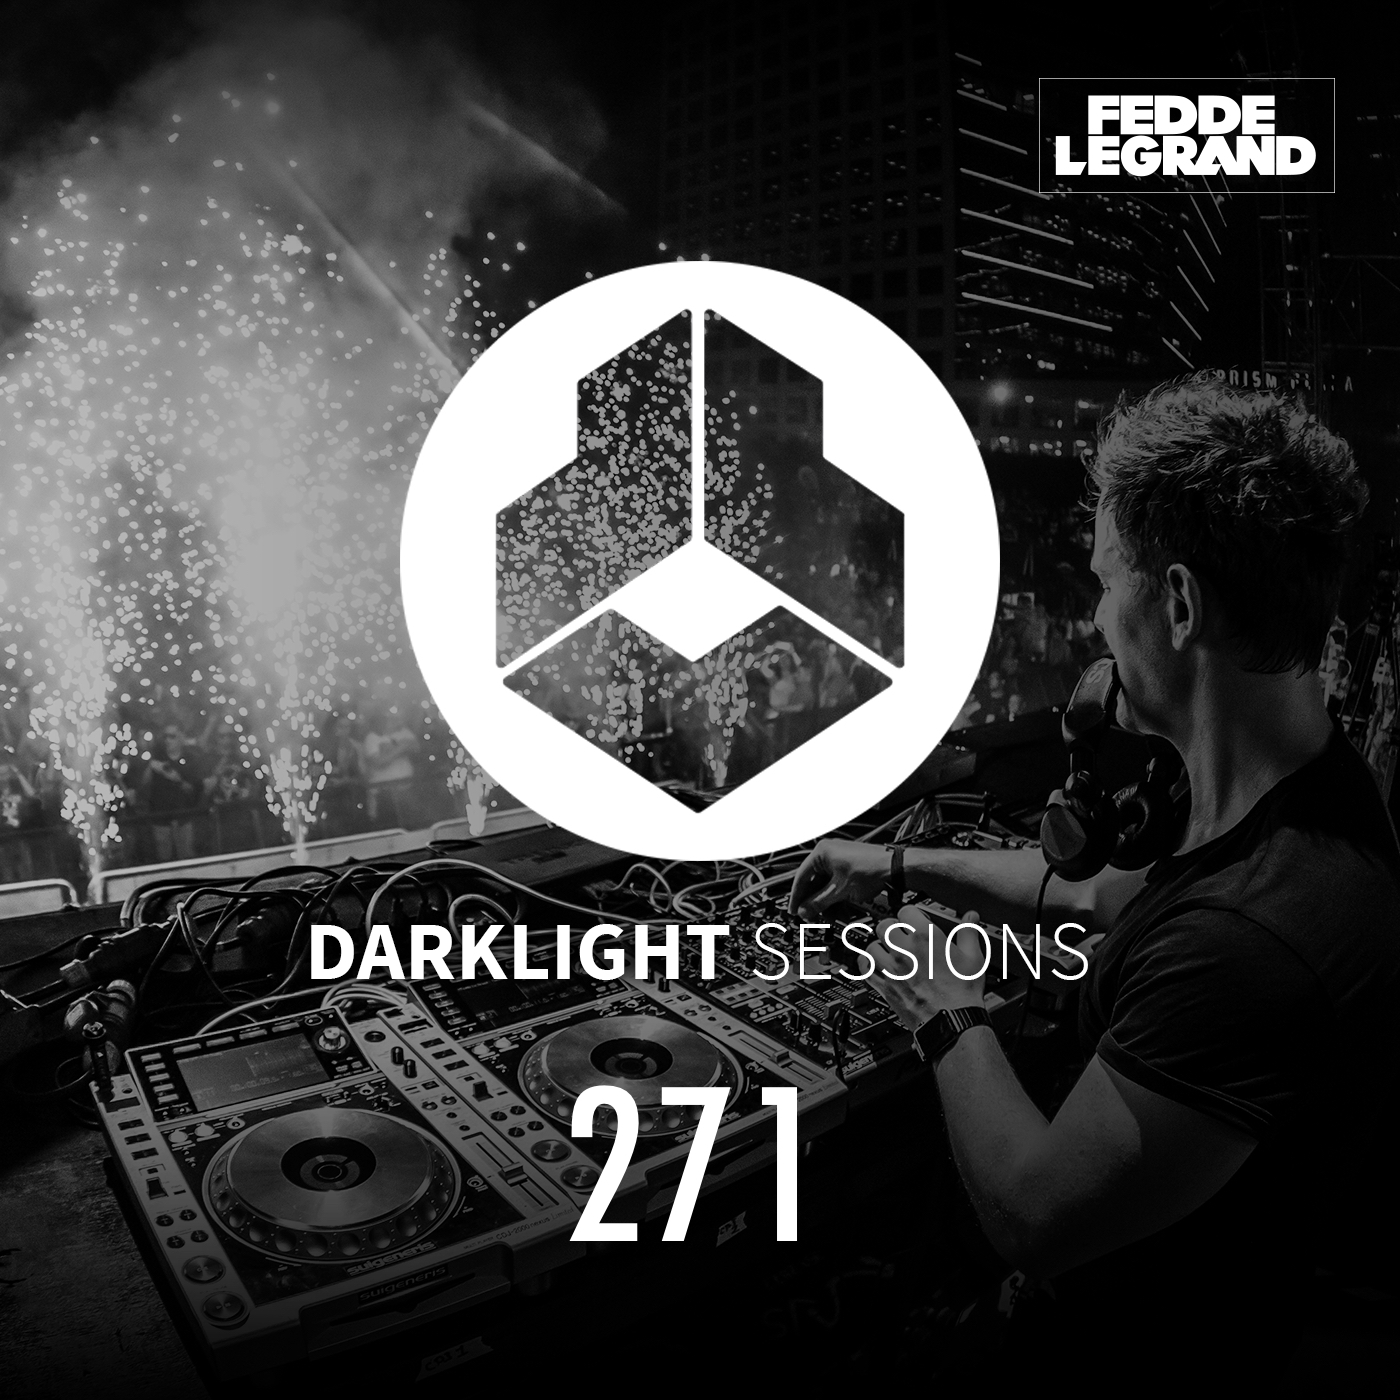 Darklight Sessions 271